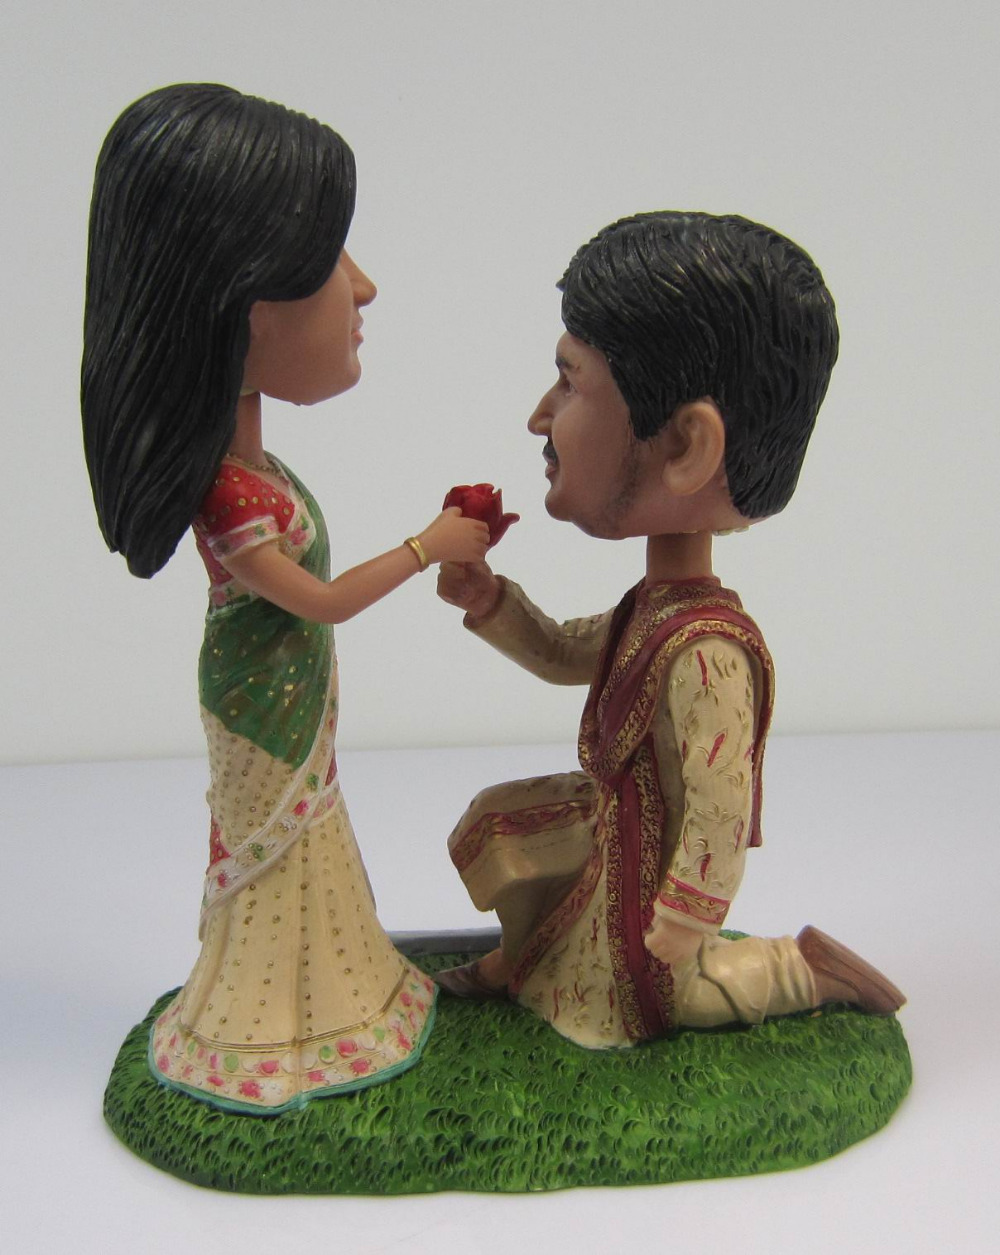 Wedding decoration wholesale india gallery wedding dress fedex free shipping personalized bobblehead doll india propose fedex free shipping personalized bobblehead doll india propose junglespirit